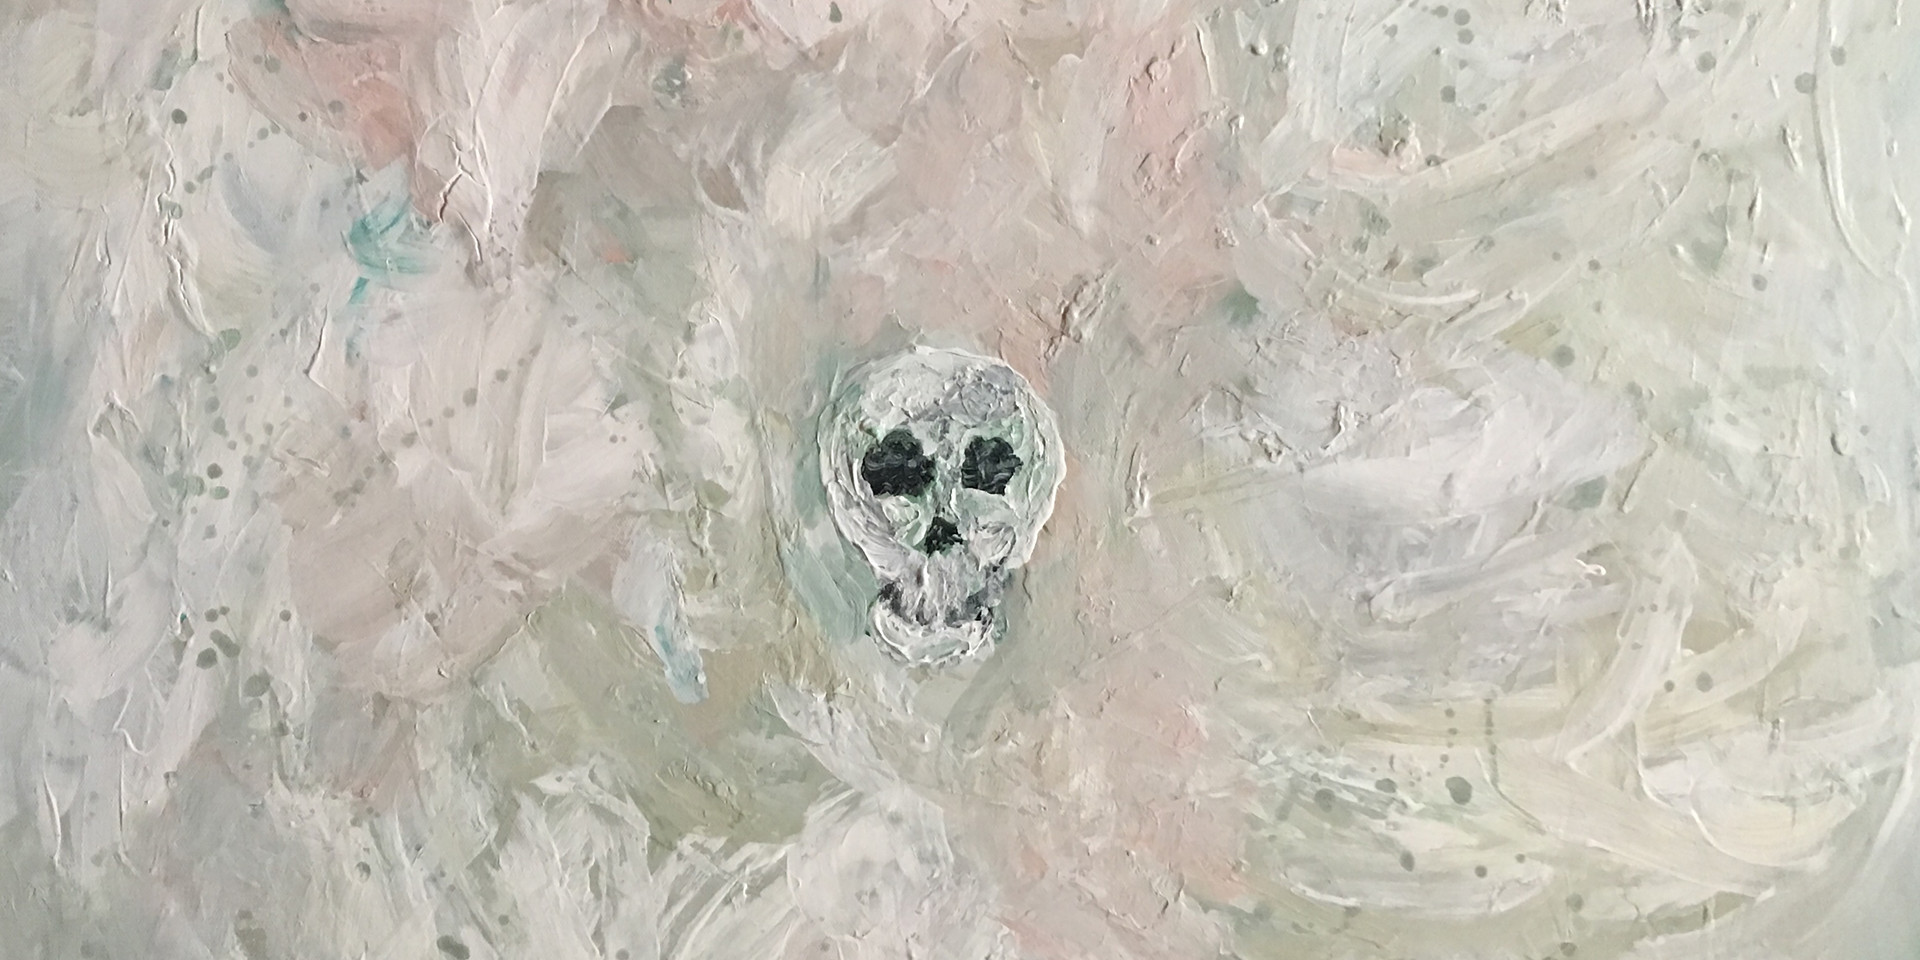 Skull in White Void